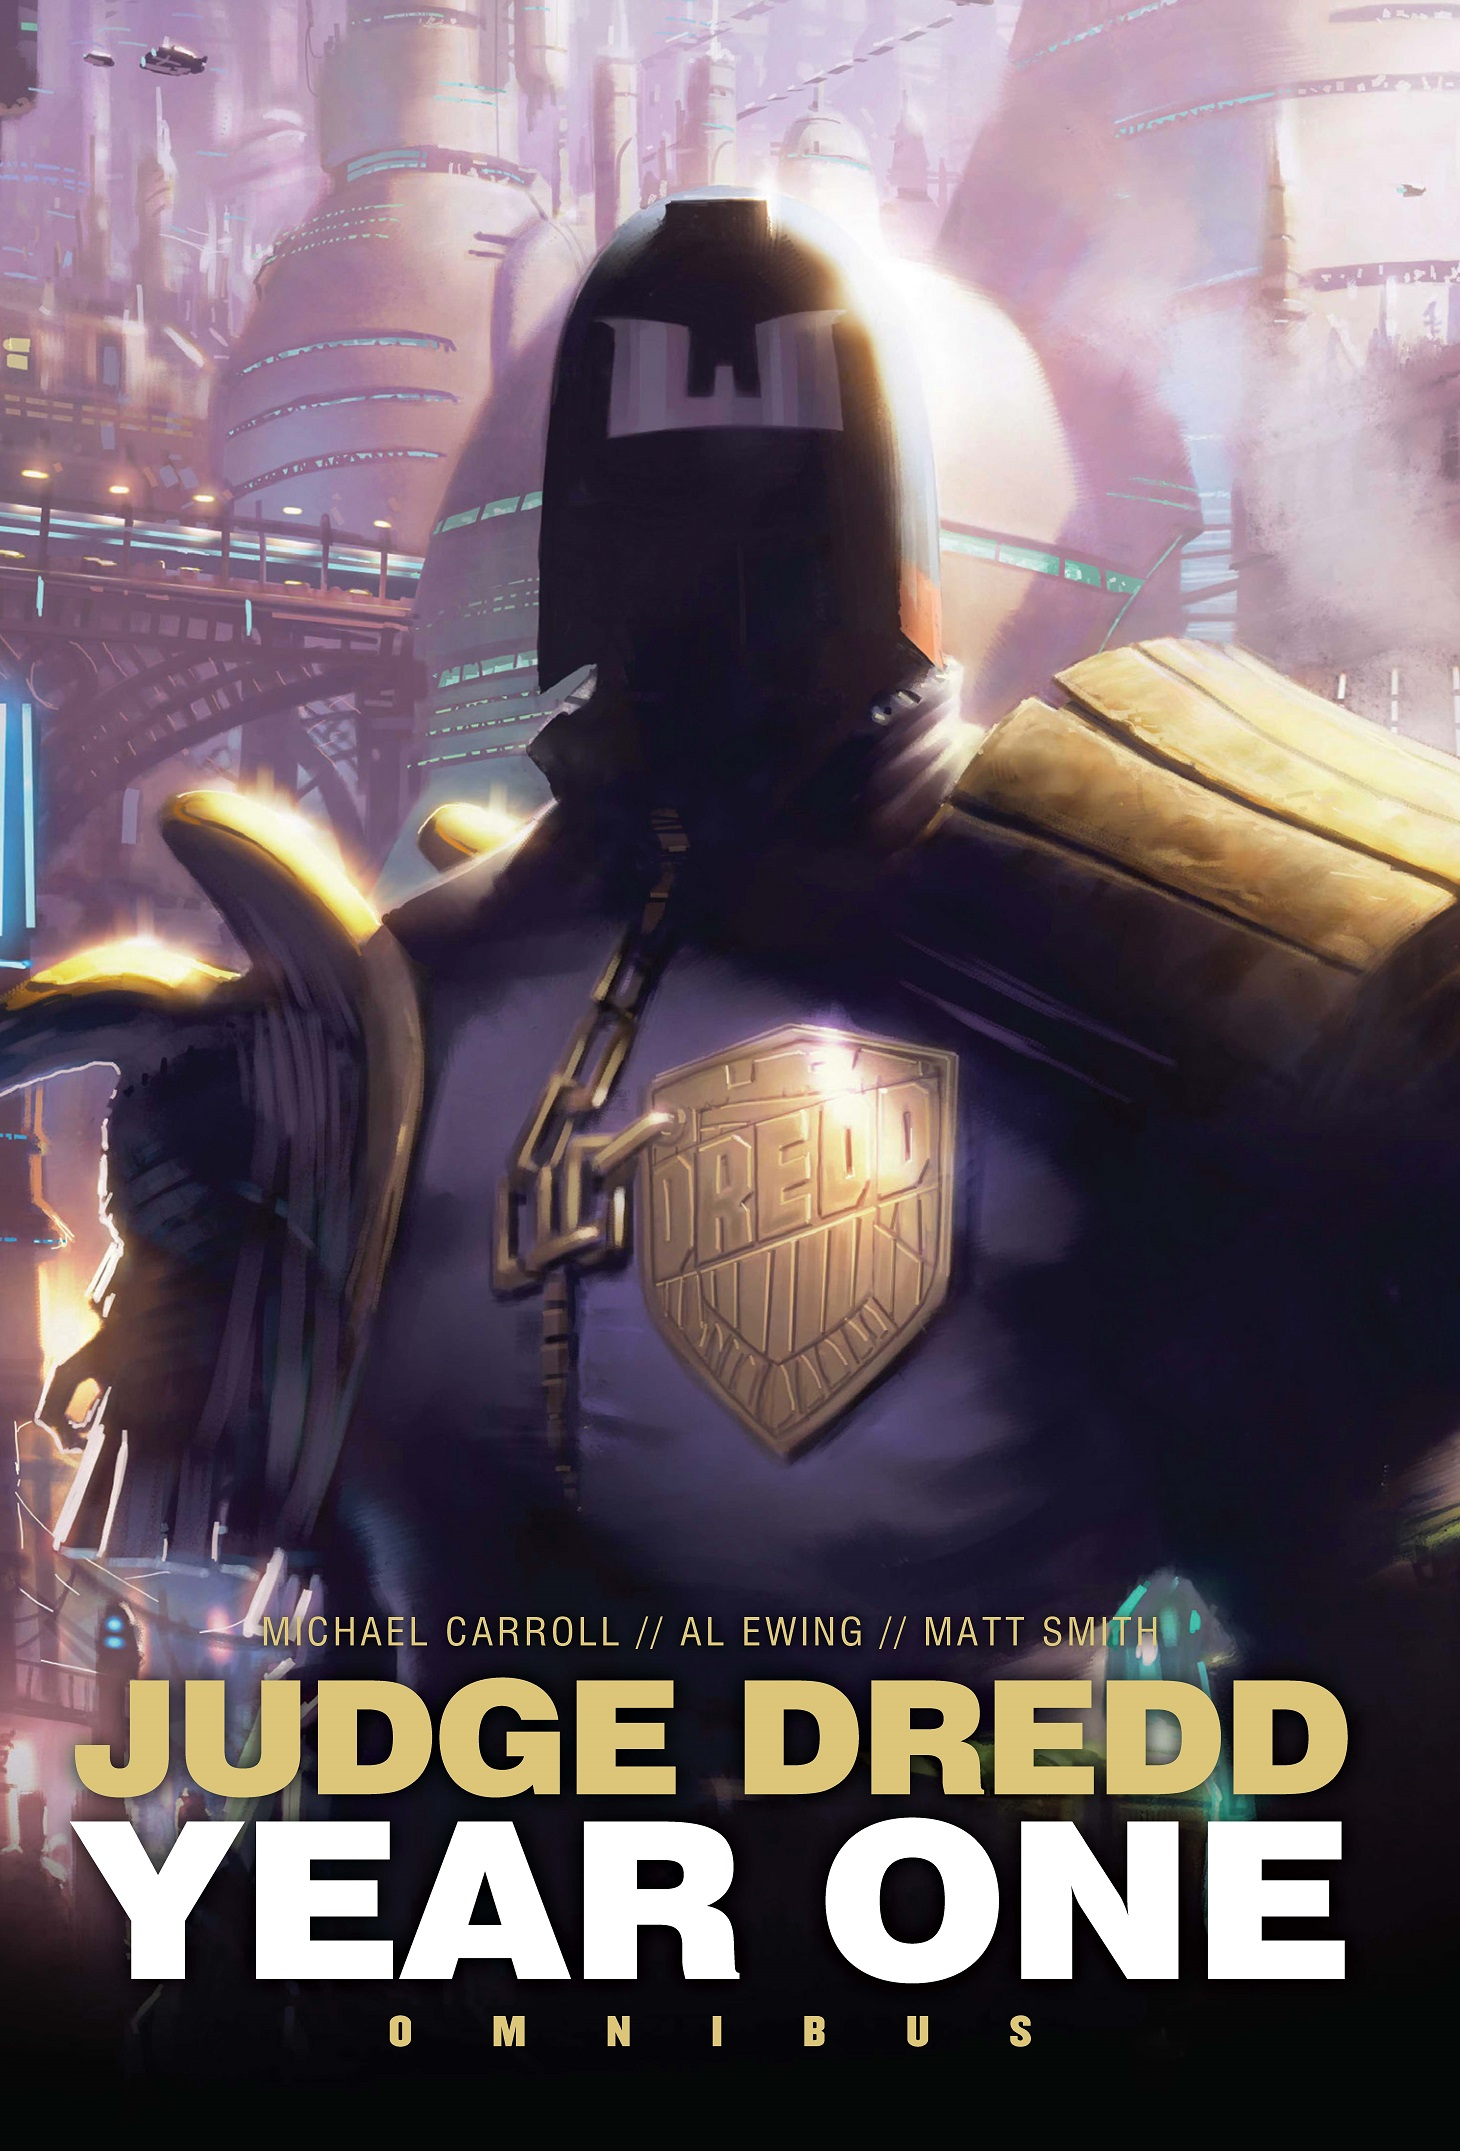 Judge Dredd Year One